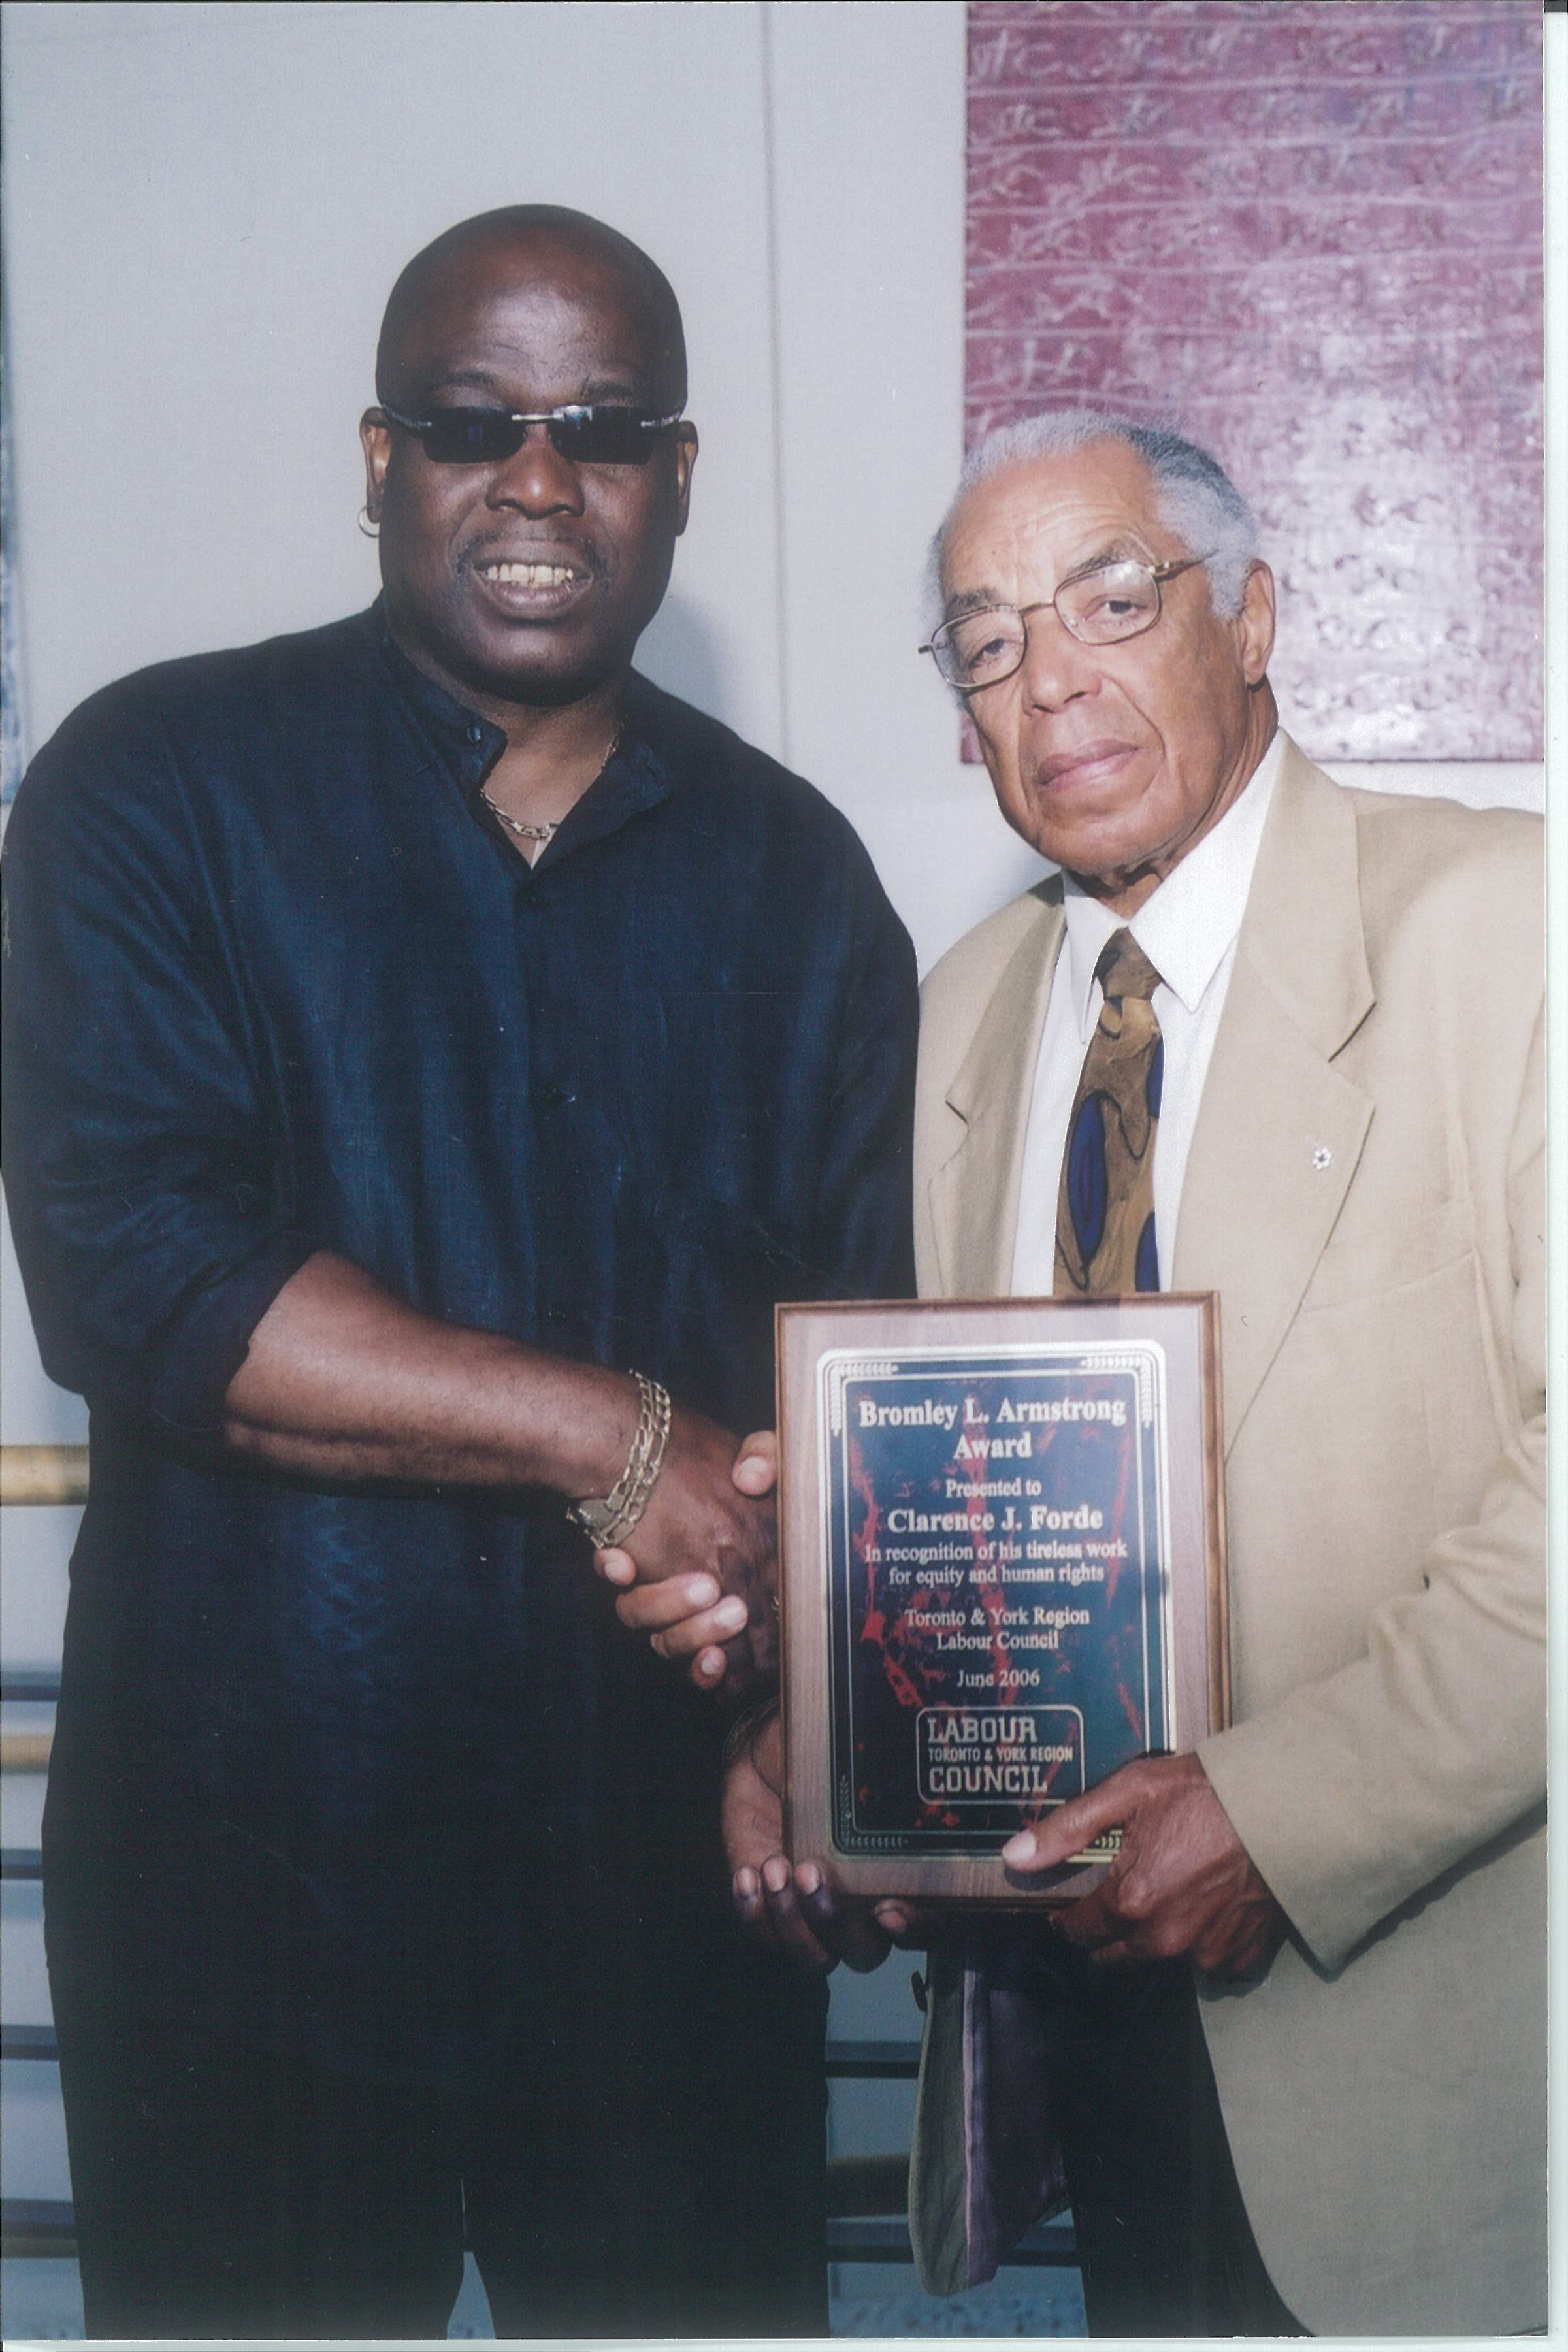 Clarence Forde (l) was the recipient of the 2006 Bromley Armstrong Award